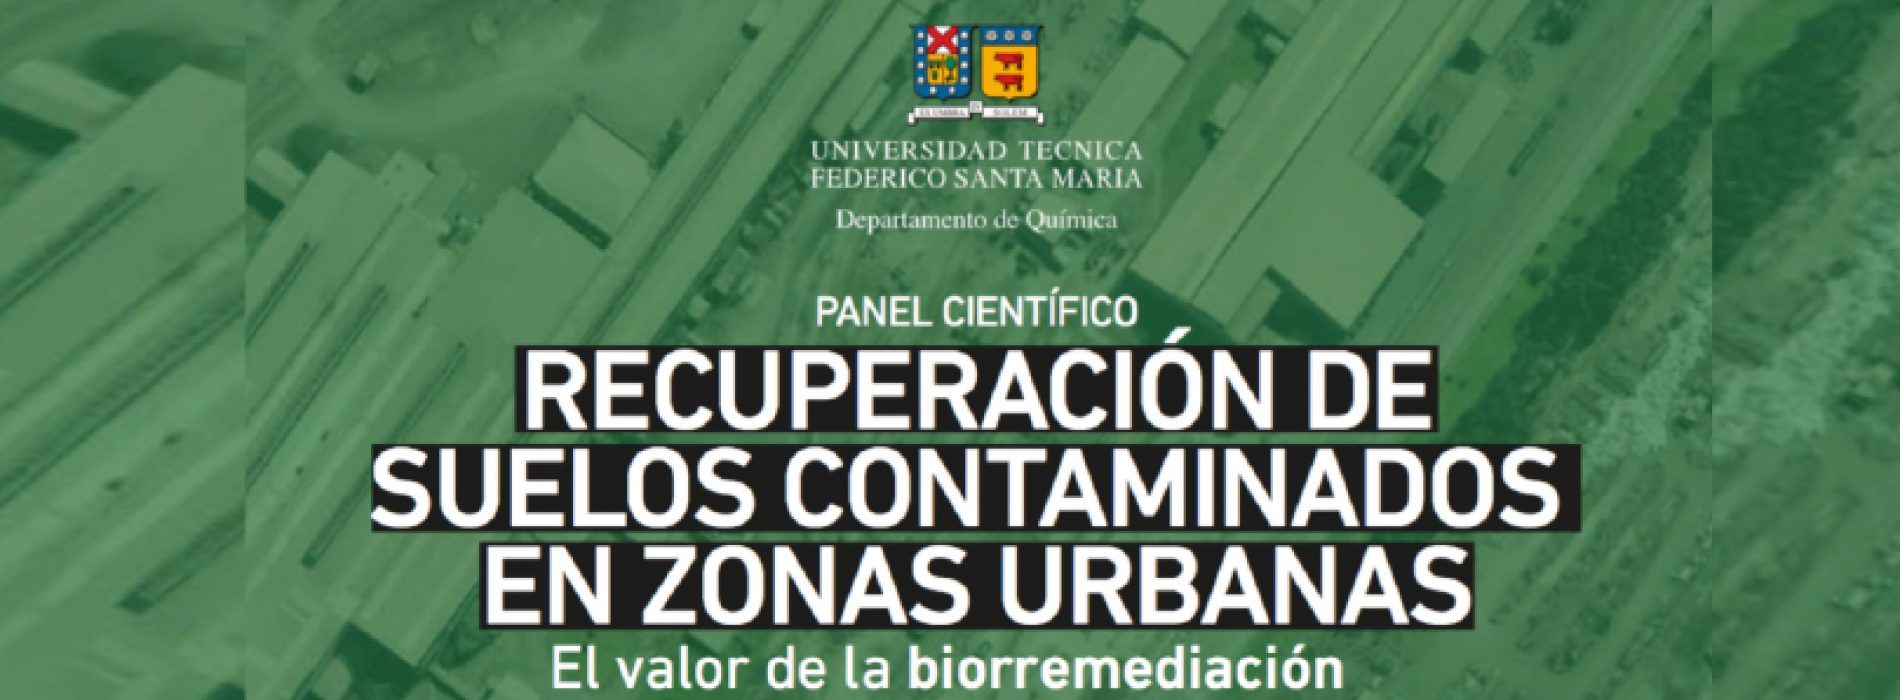 Scientific Panel invitation: Recovery of contaminated soil in urban areas